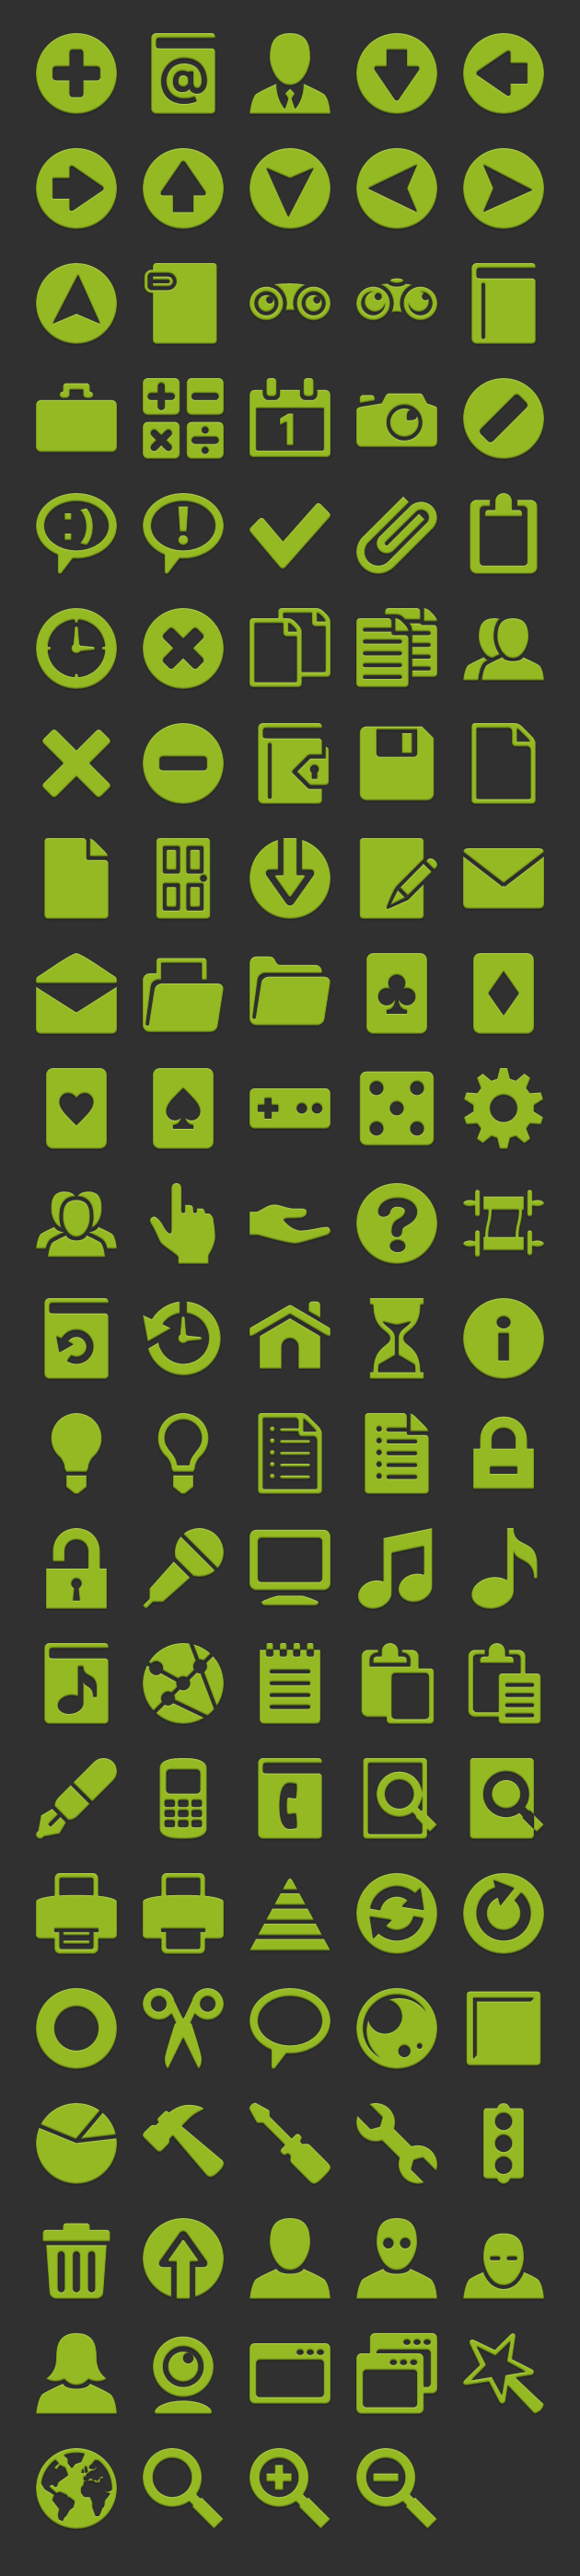 android icons general launcher xhdpi